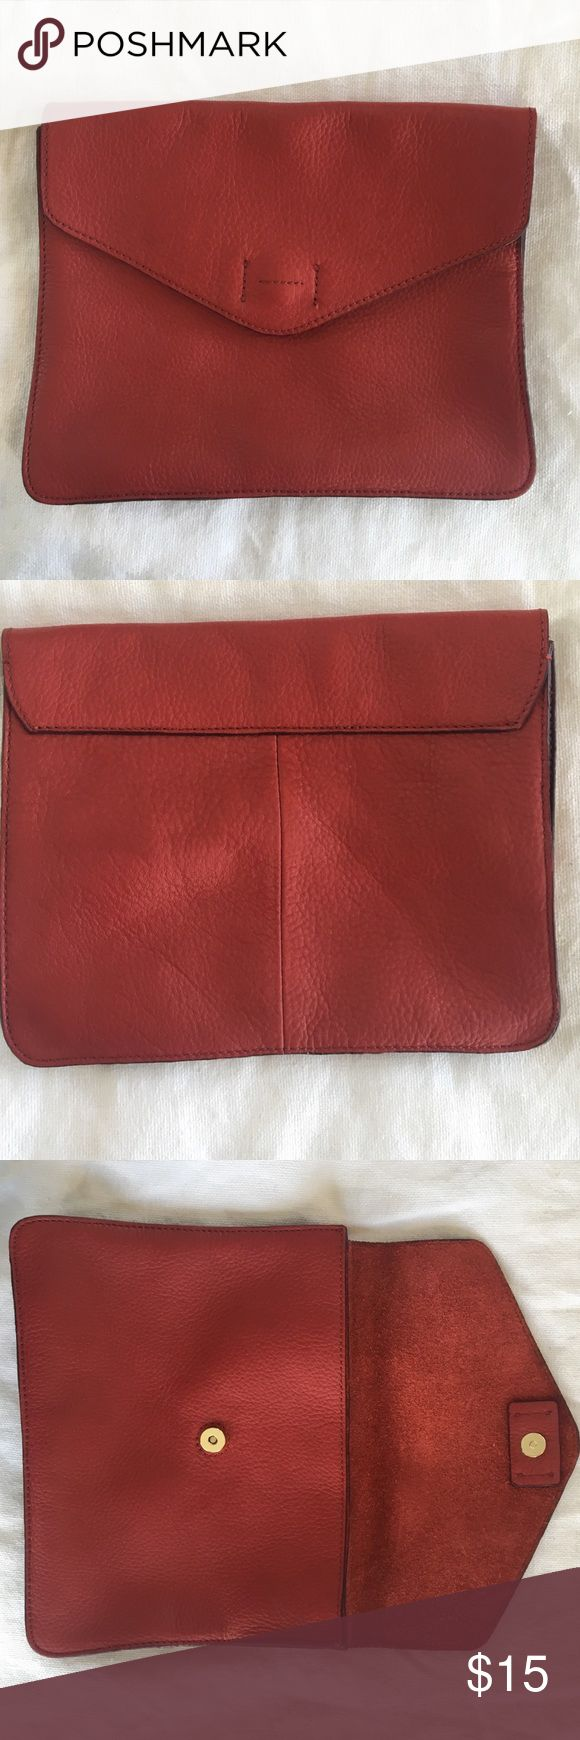 Red leather envelope clutch Clutch from Gap, very easy to carry! Great condition. GAP Bags Clutches & Wristlets